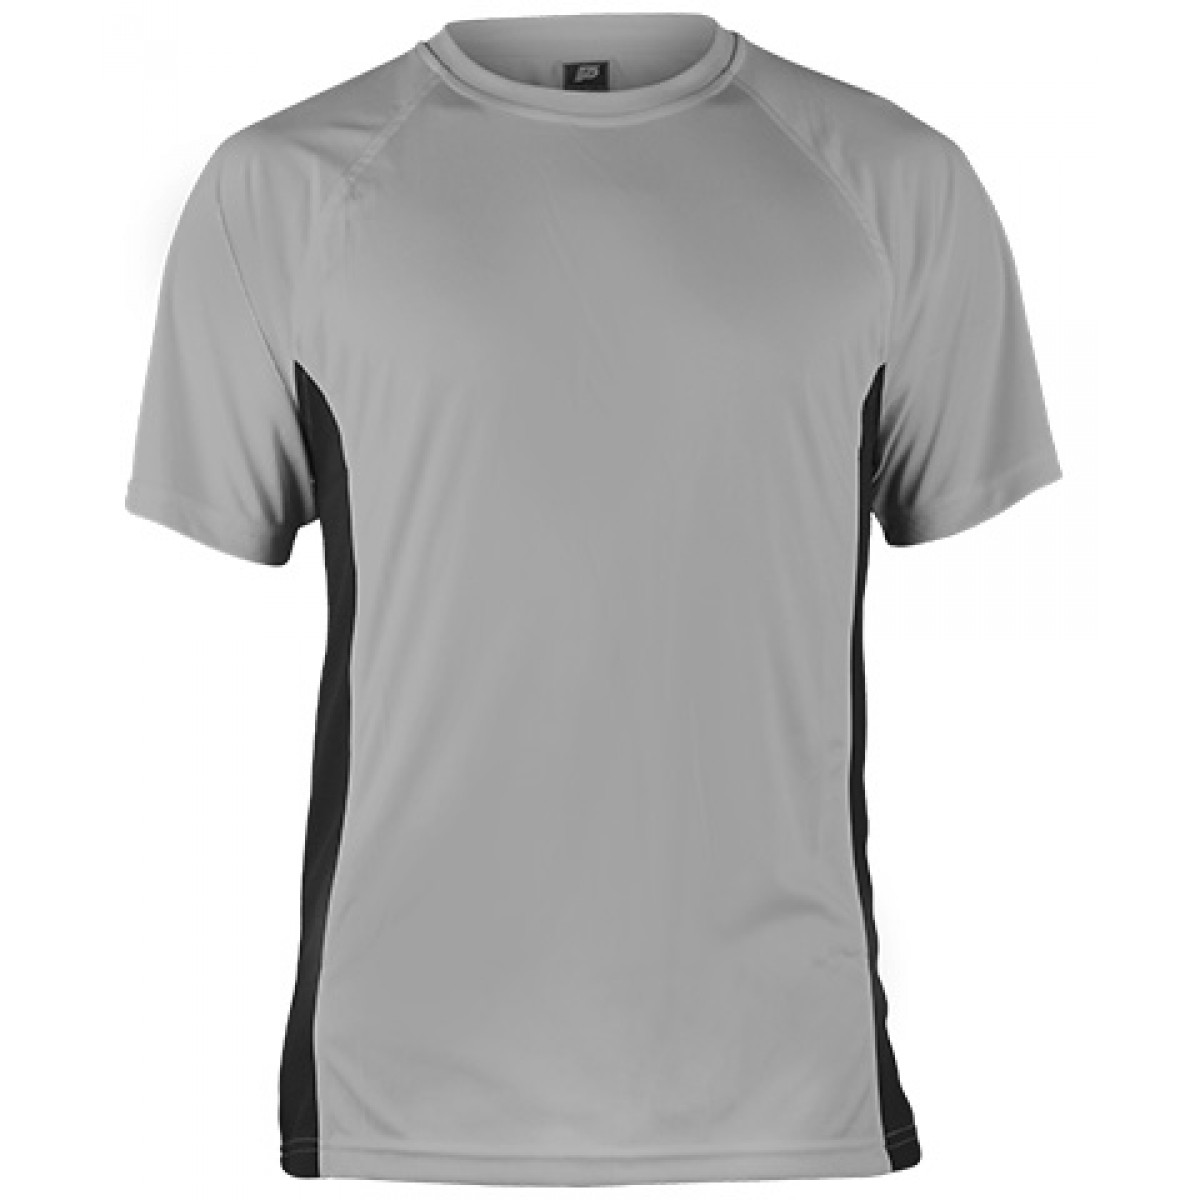 Short Sleeves Performance With Side Insert-Gray/Black-YM